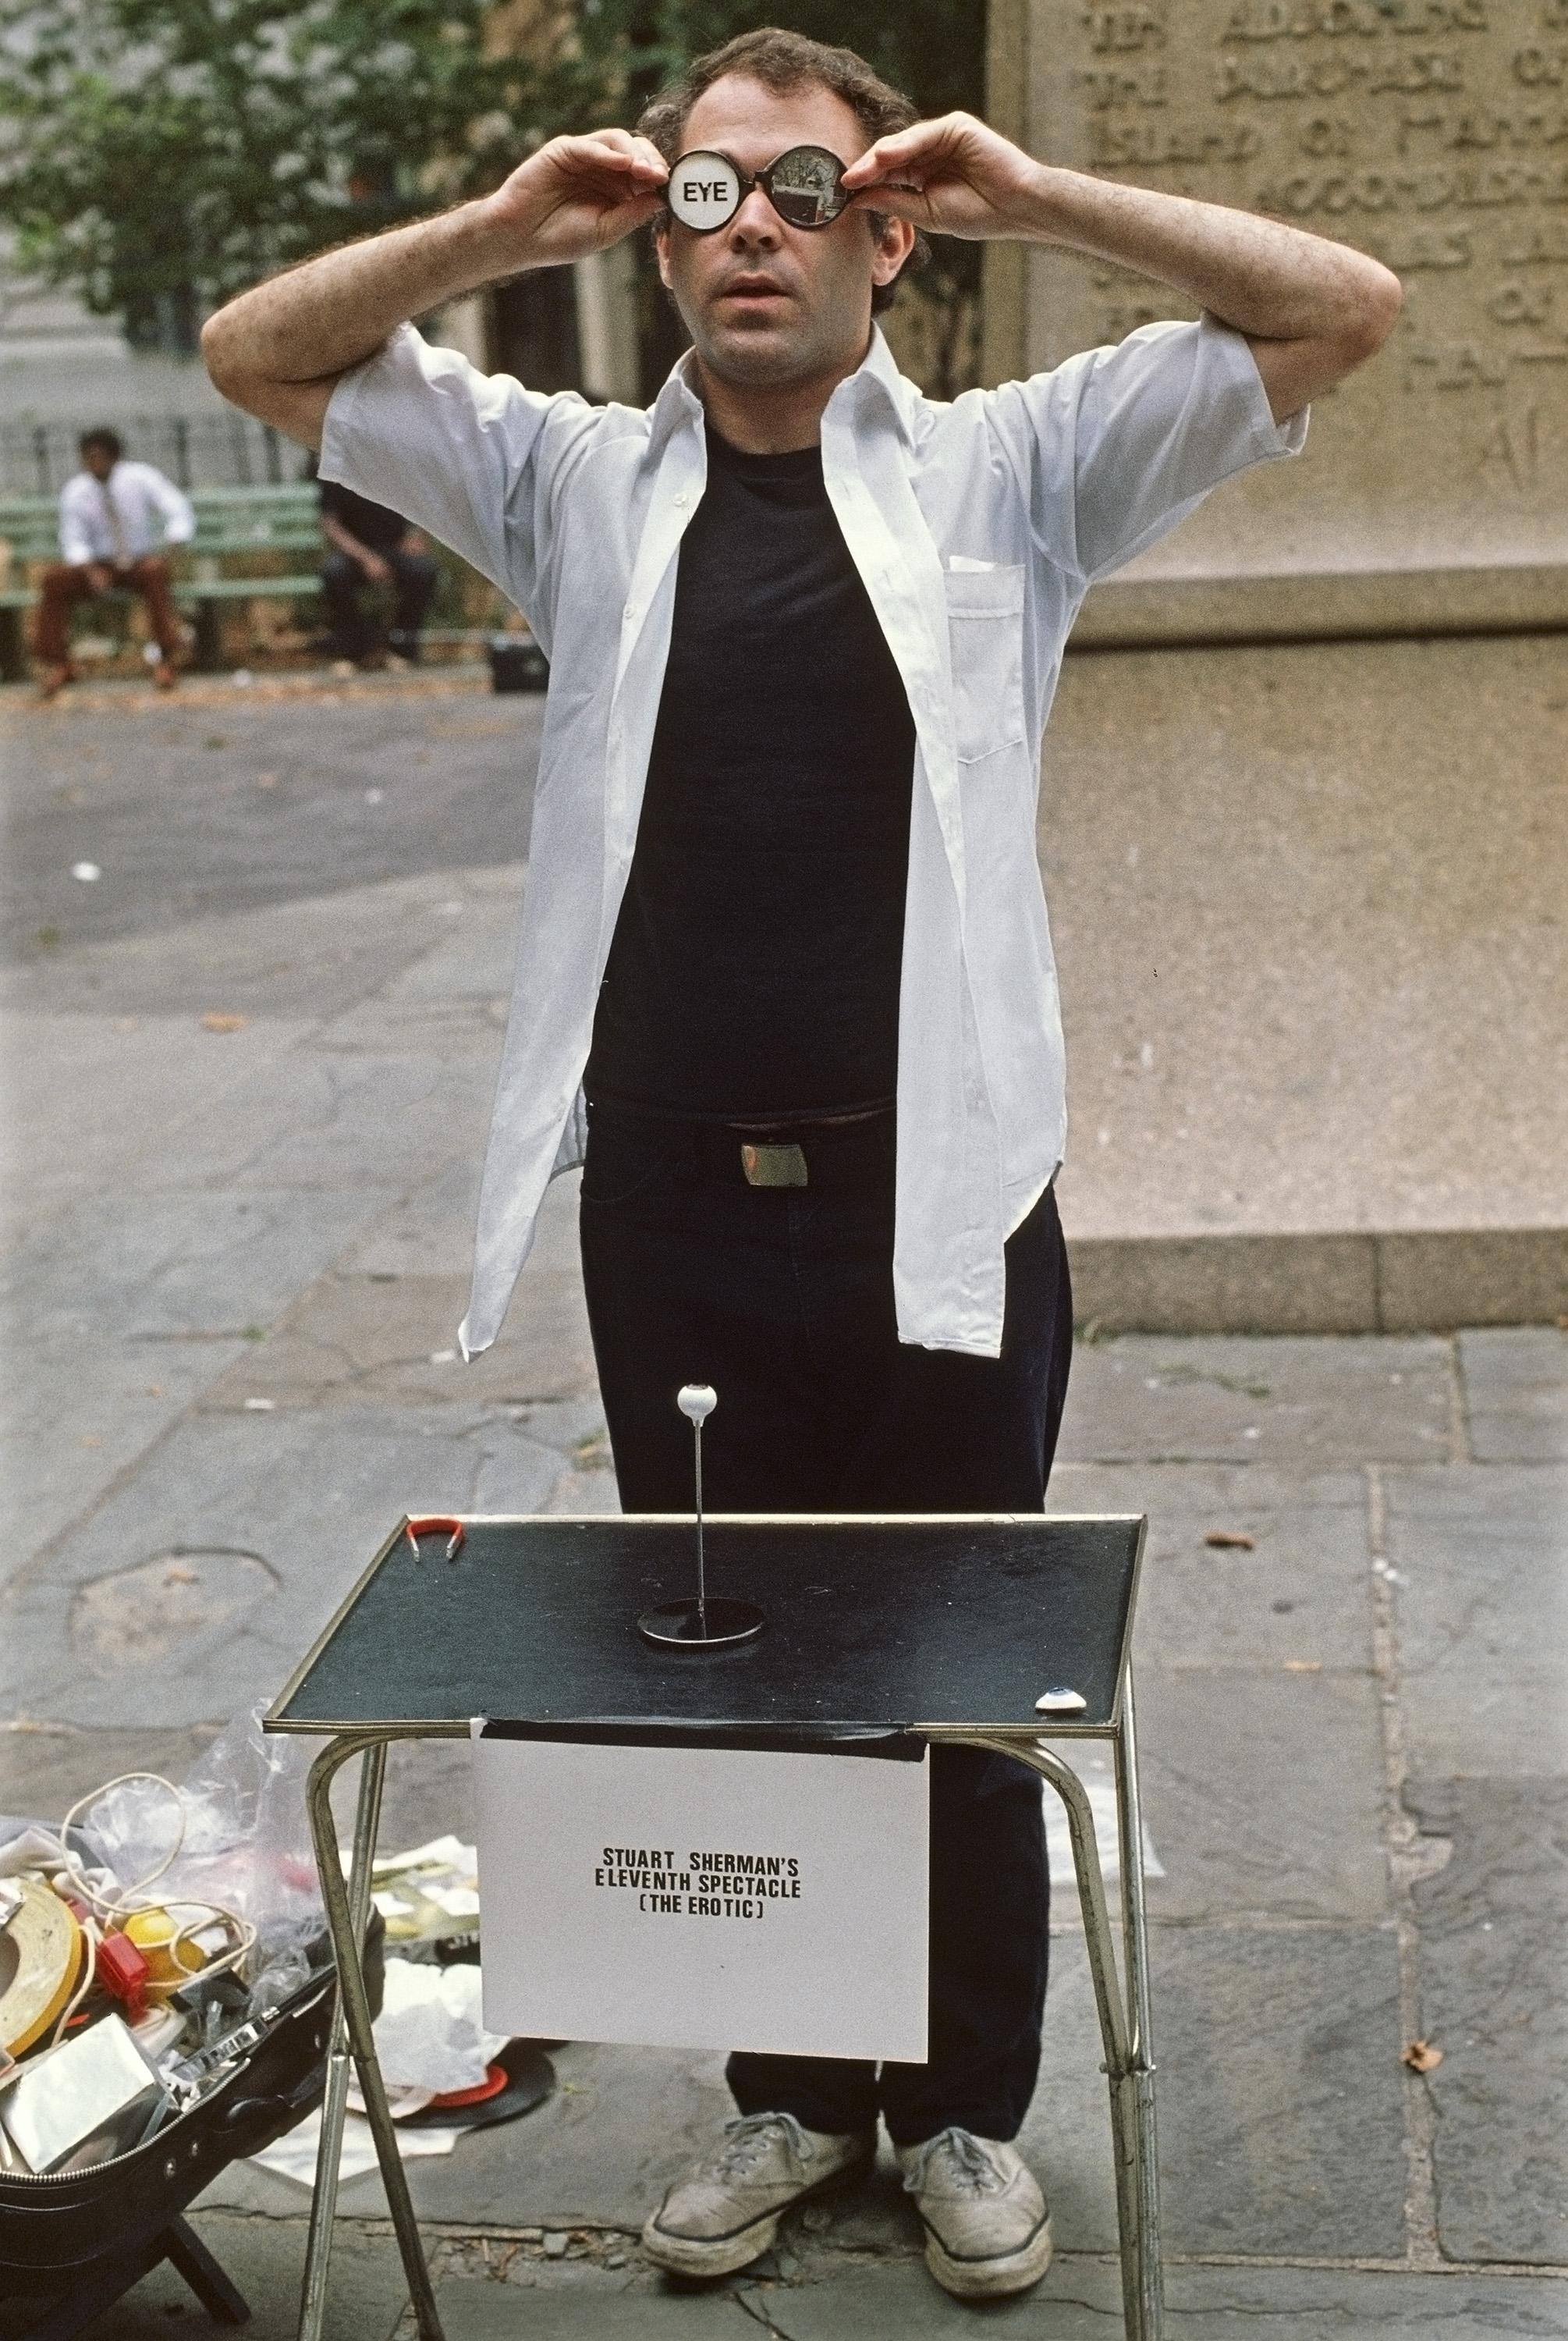 A performance still shows a man in a public park putting on round glasses that contain pieces of paper in place of lenses.